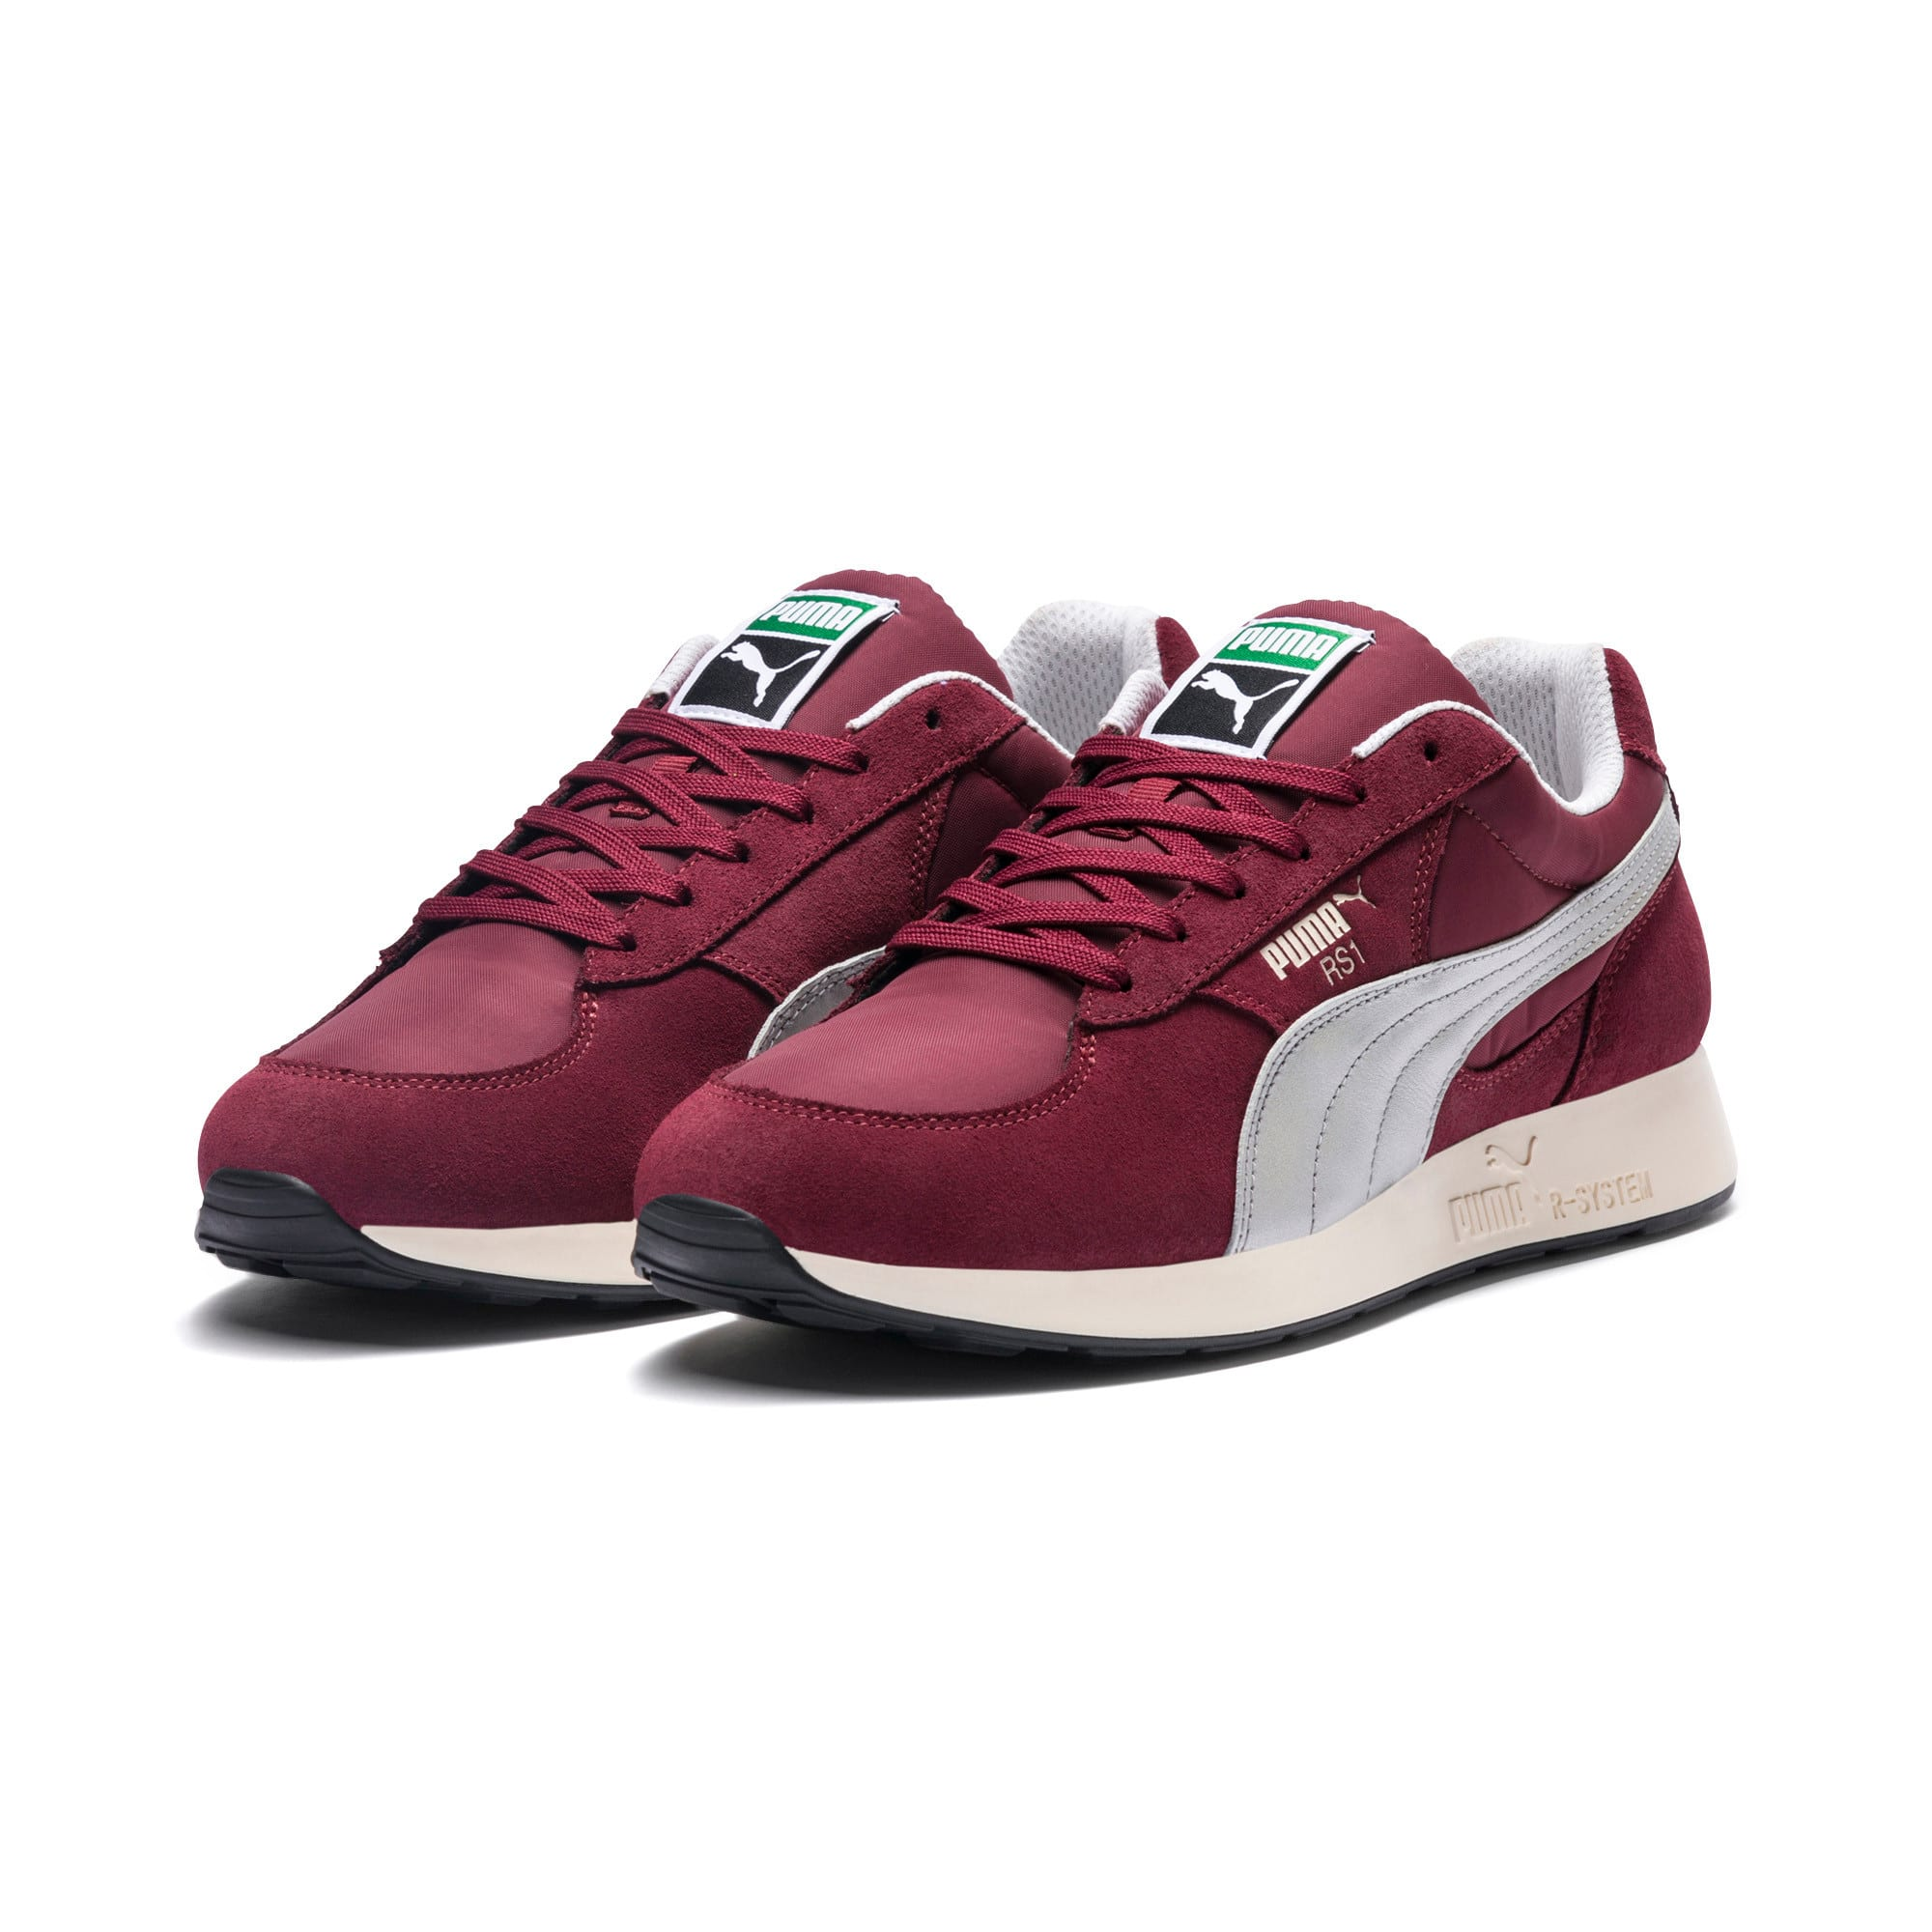 RS-1 Trainers, Cordovan-Puma Silver, large